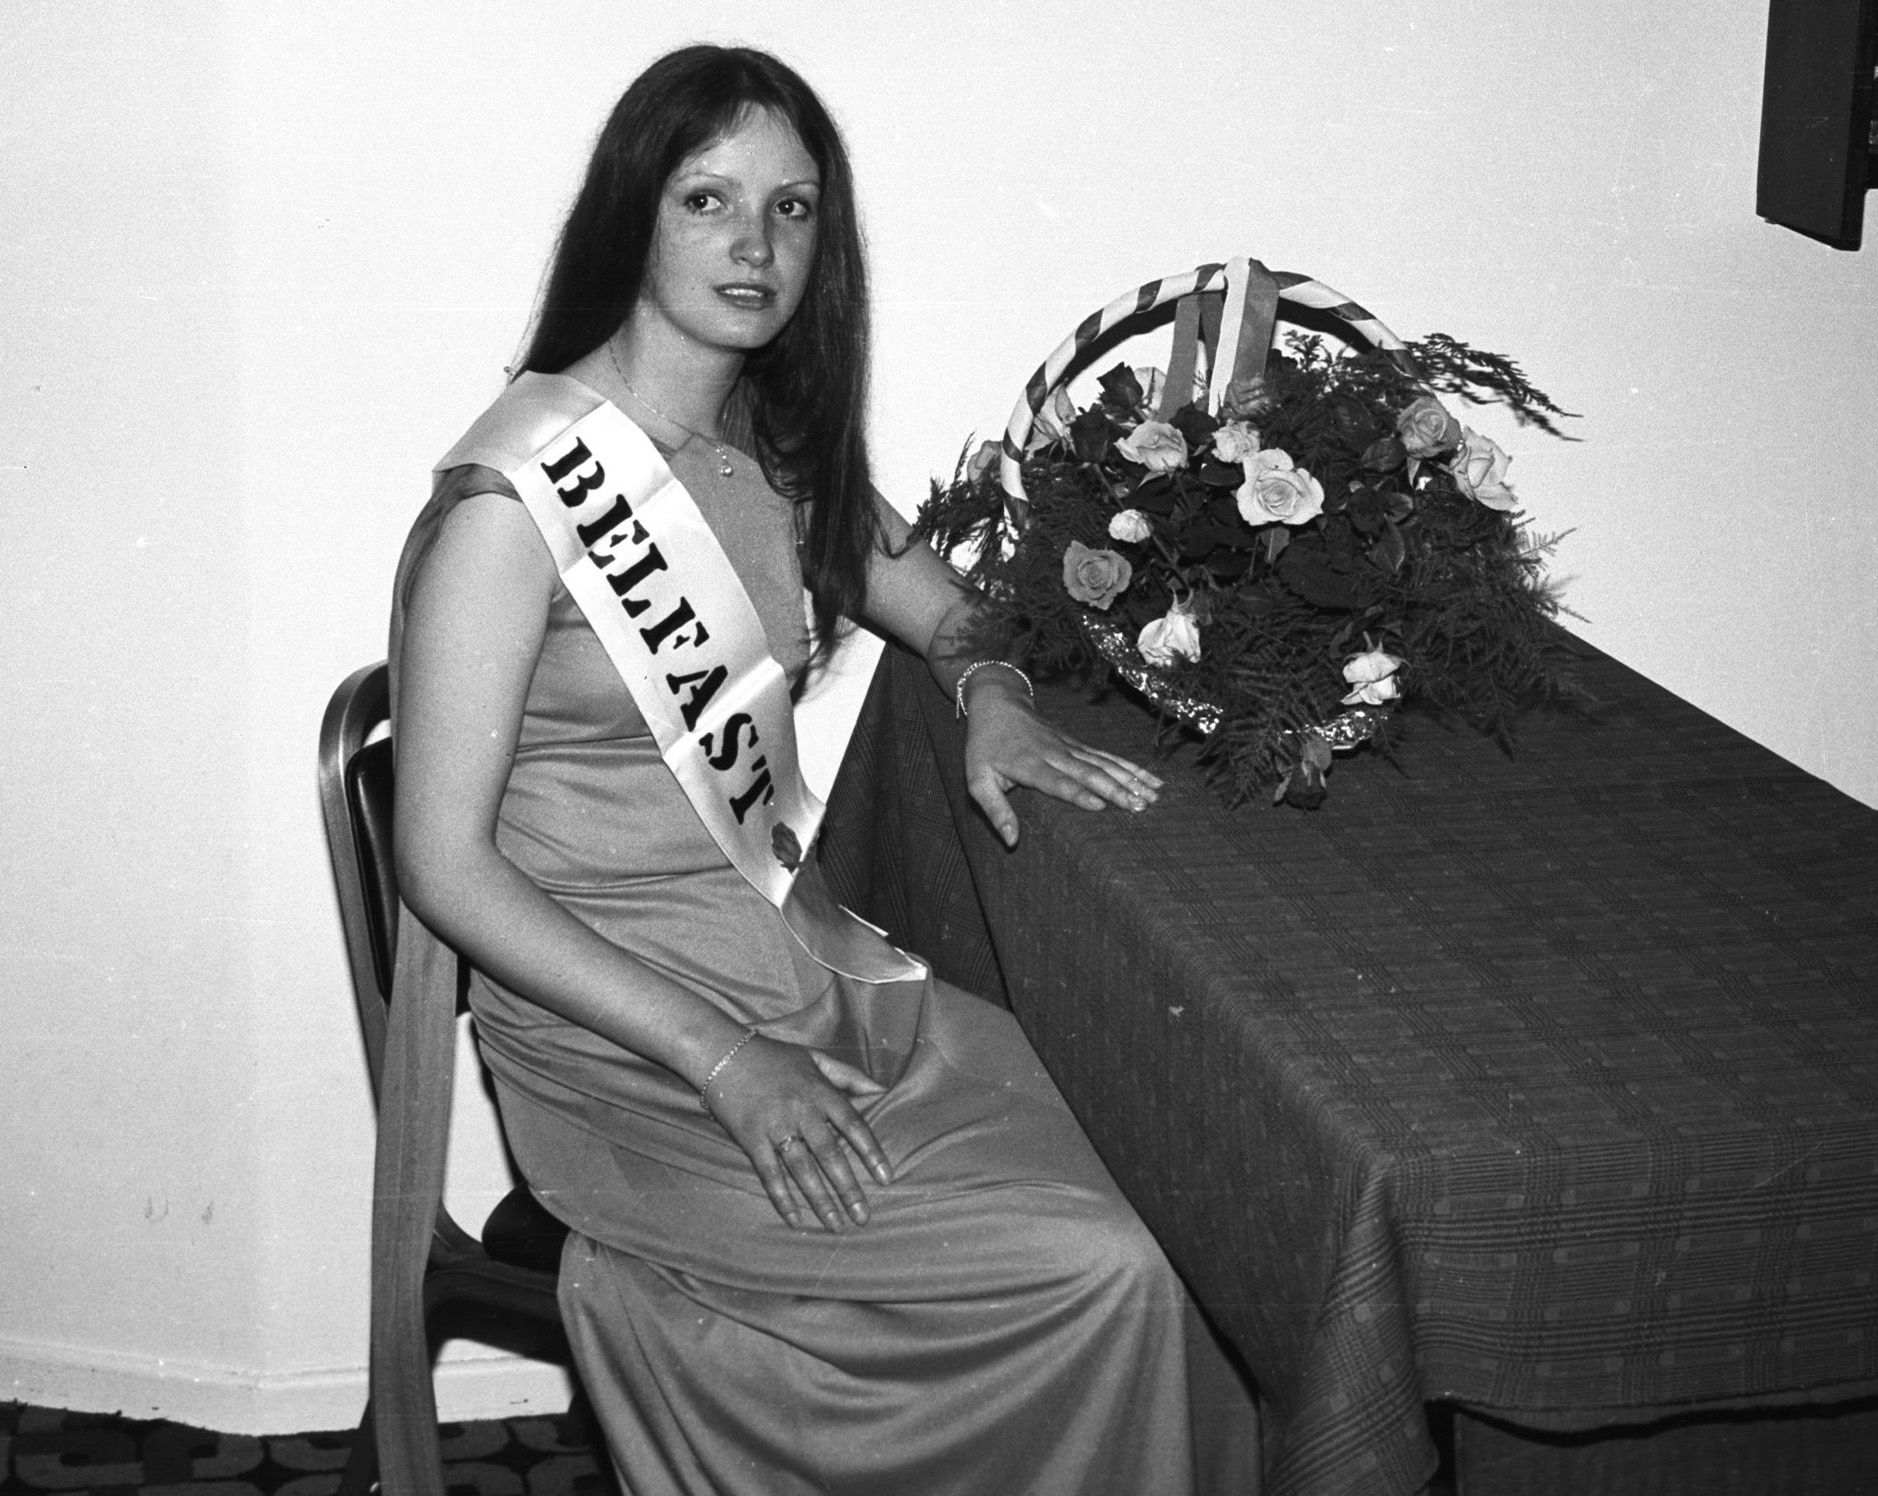 Marita Marron from Gransha was set to represent Belfast in the Rose of Tralee contest, this week back in June 1979